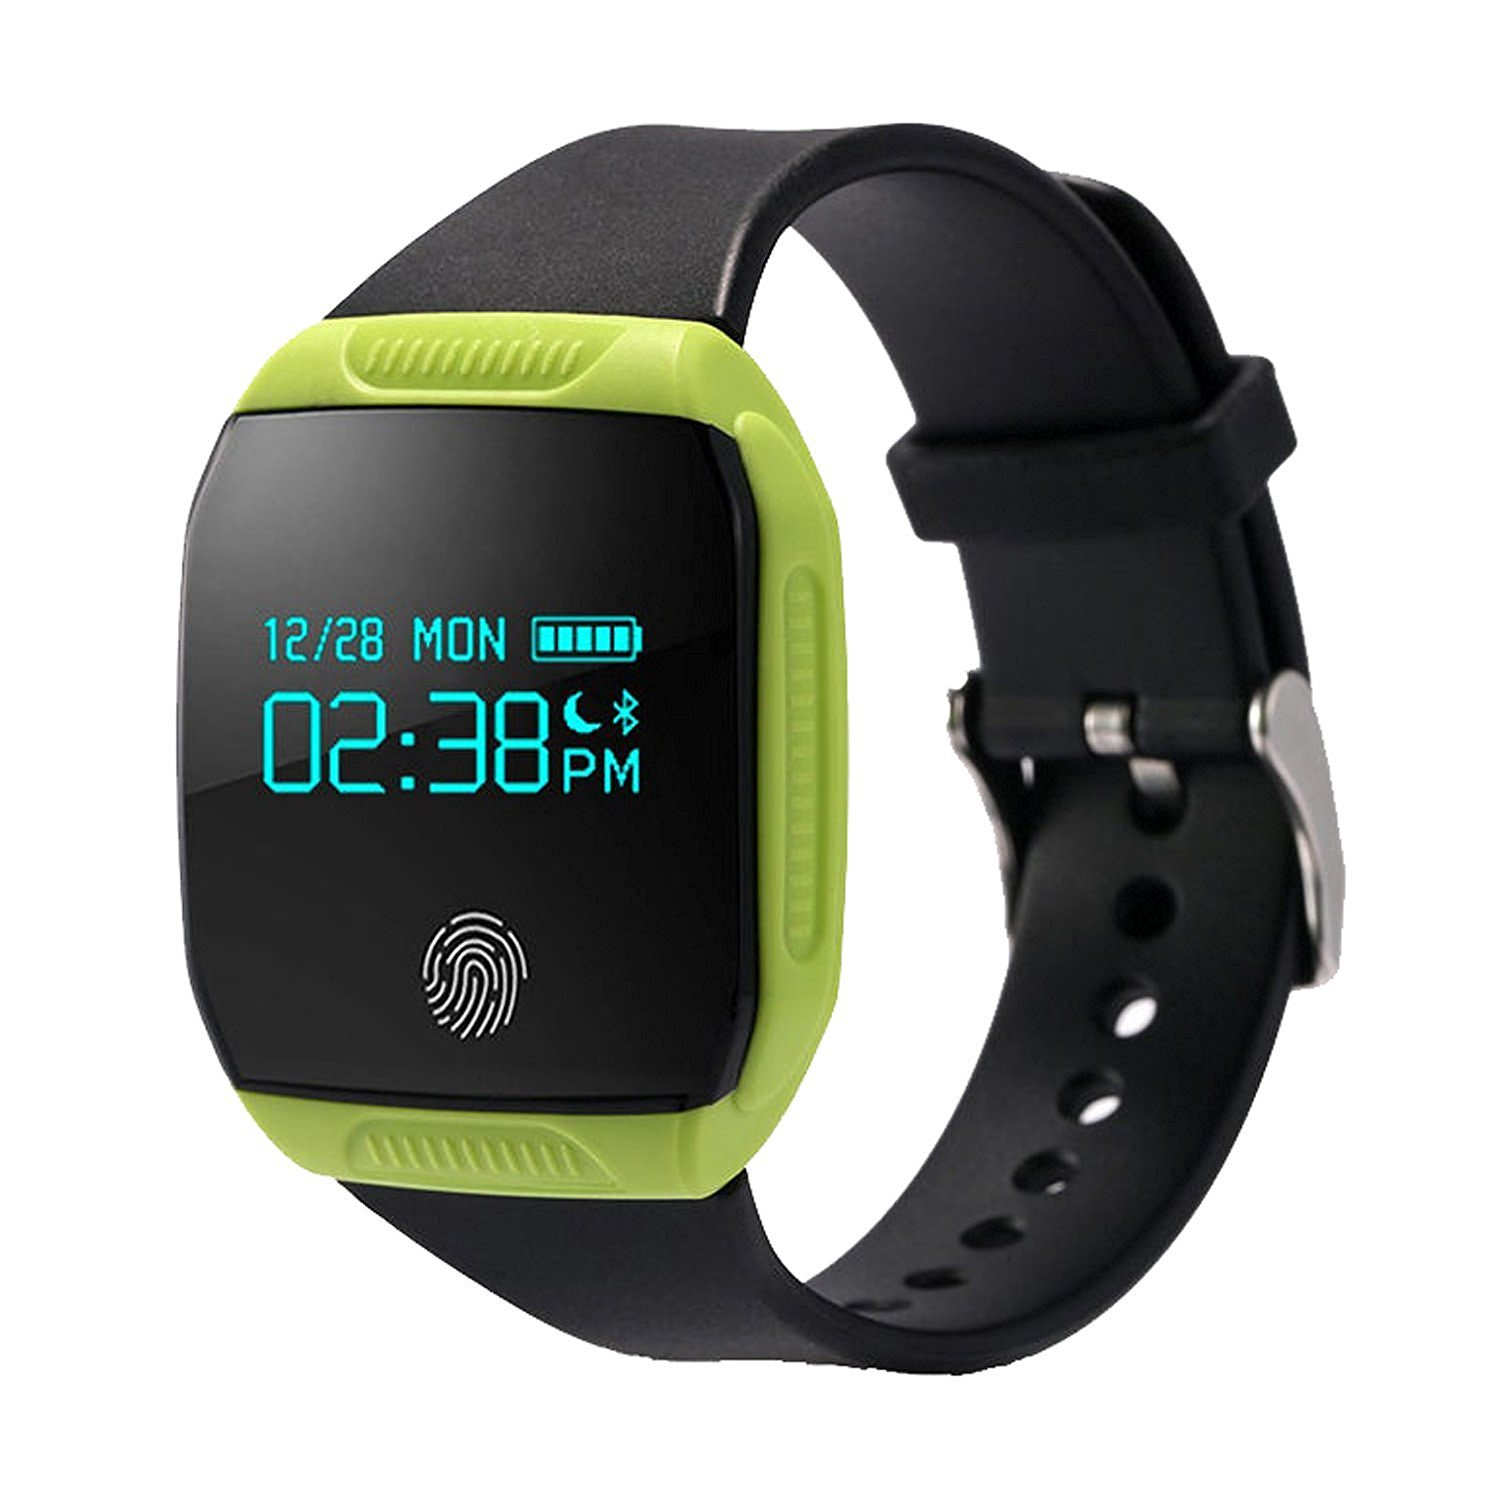 loading pressure health smart watch band watches blood colour tracker is image sports screen fitness navy itm